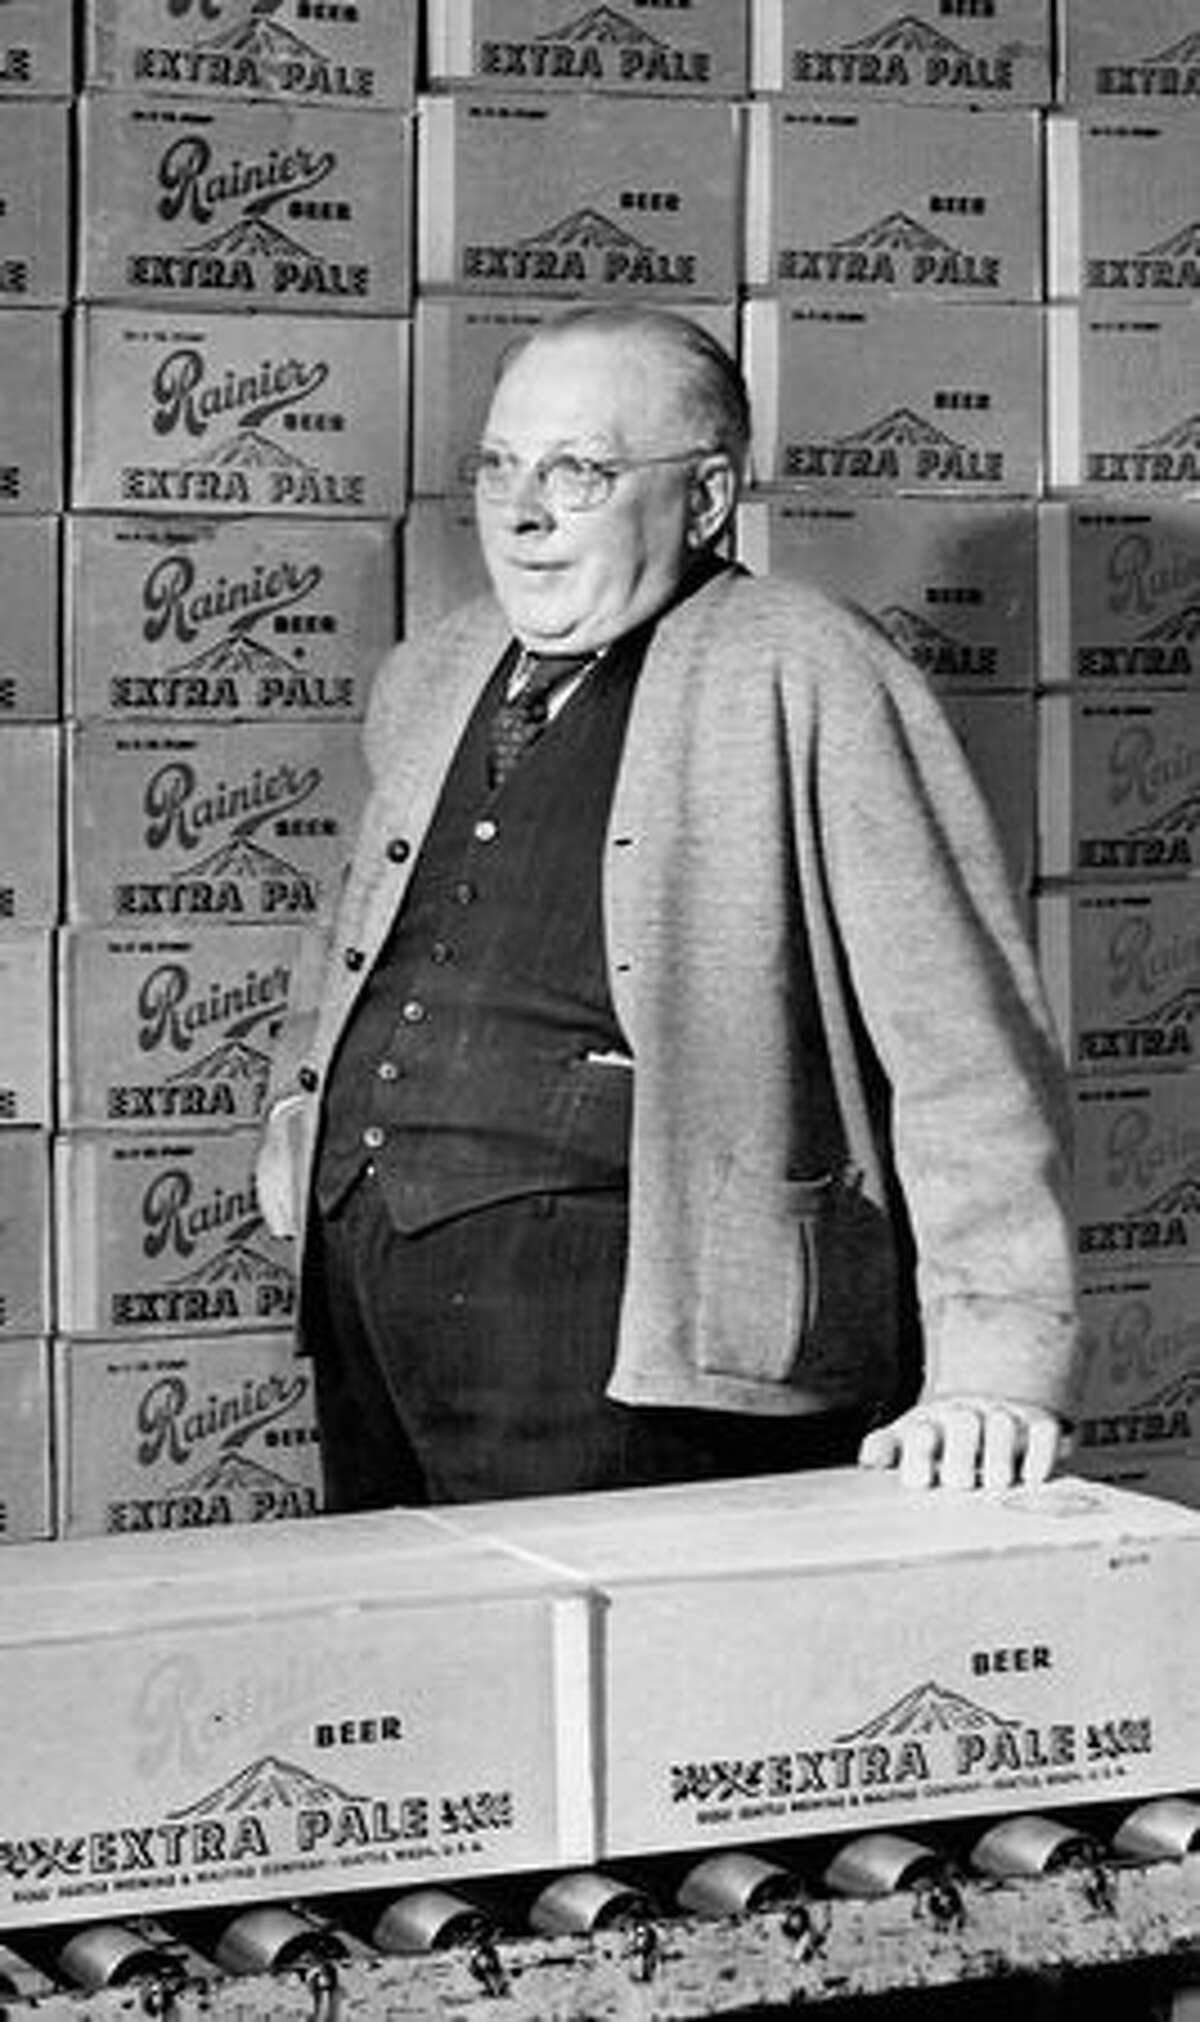 Ernest Beley, bottle shop superintendent, packaged Rainier Extra Pale, August 1949.